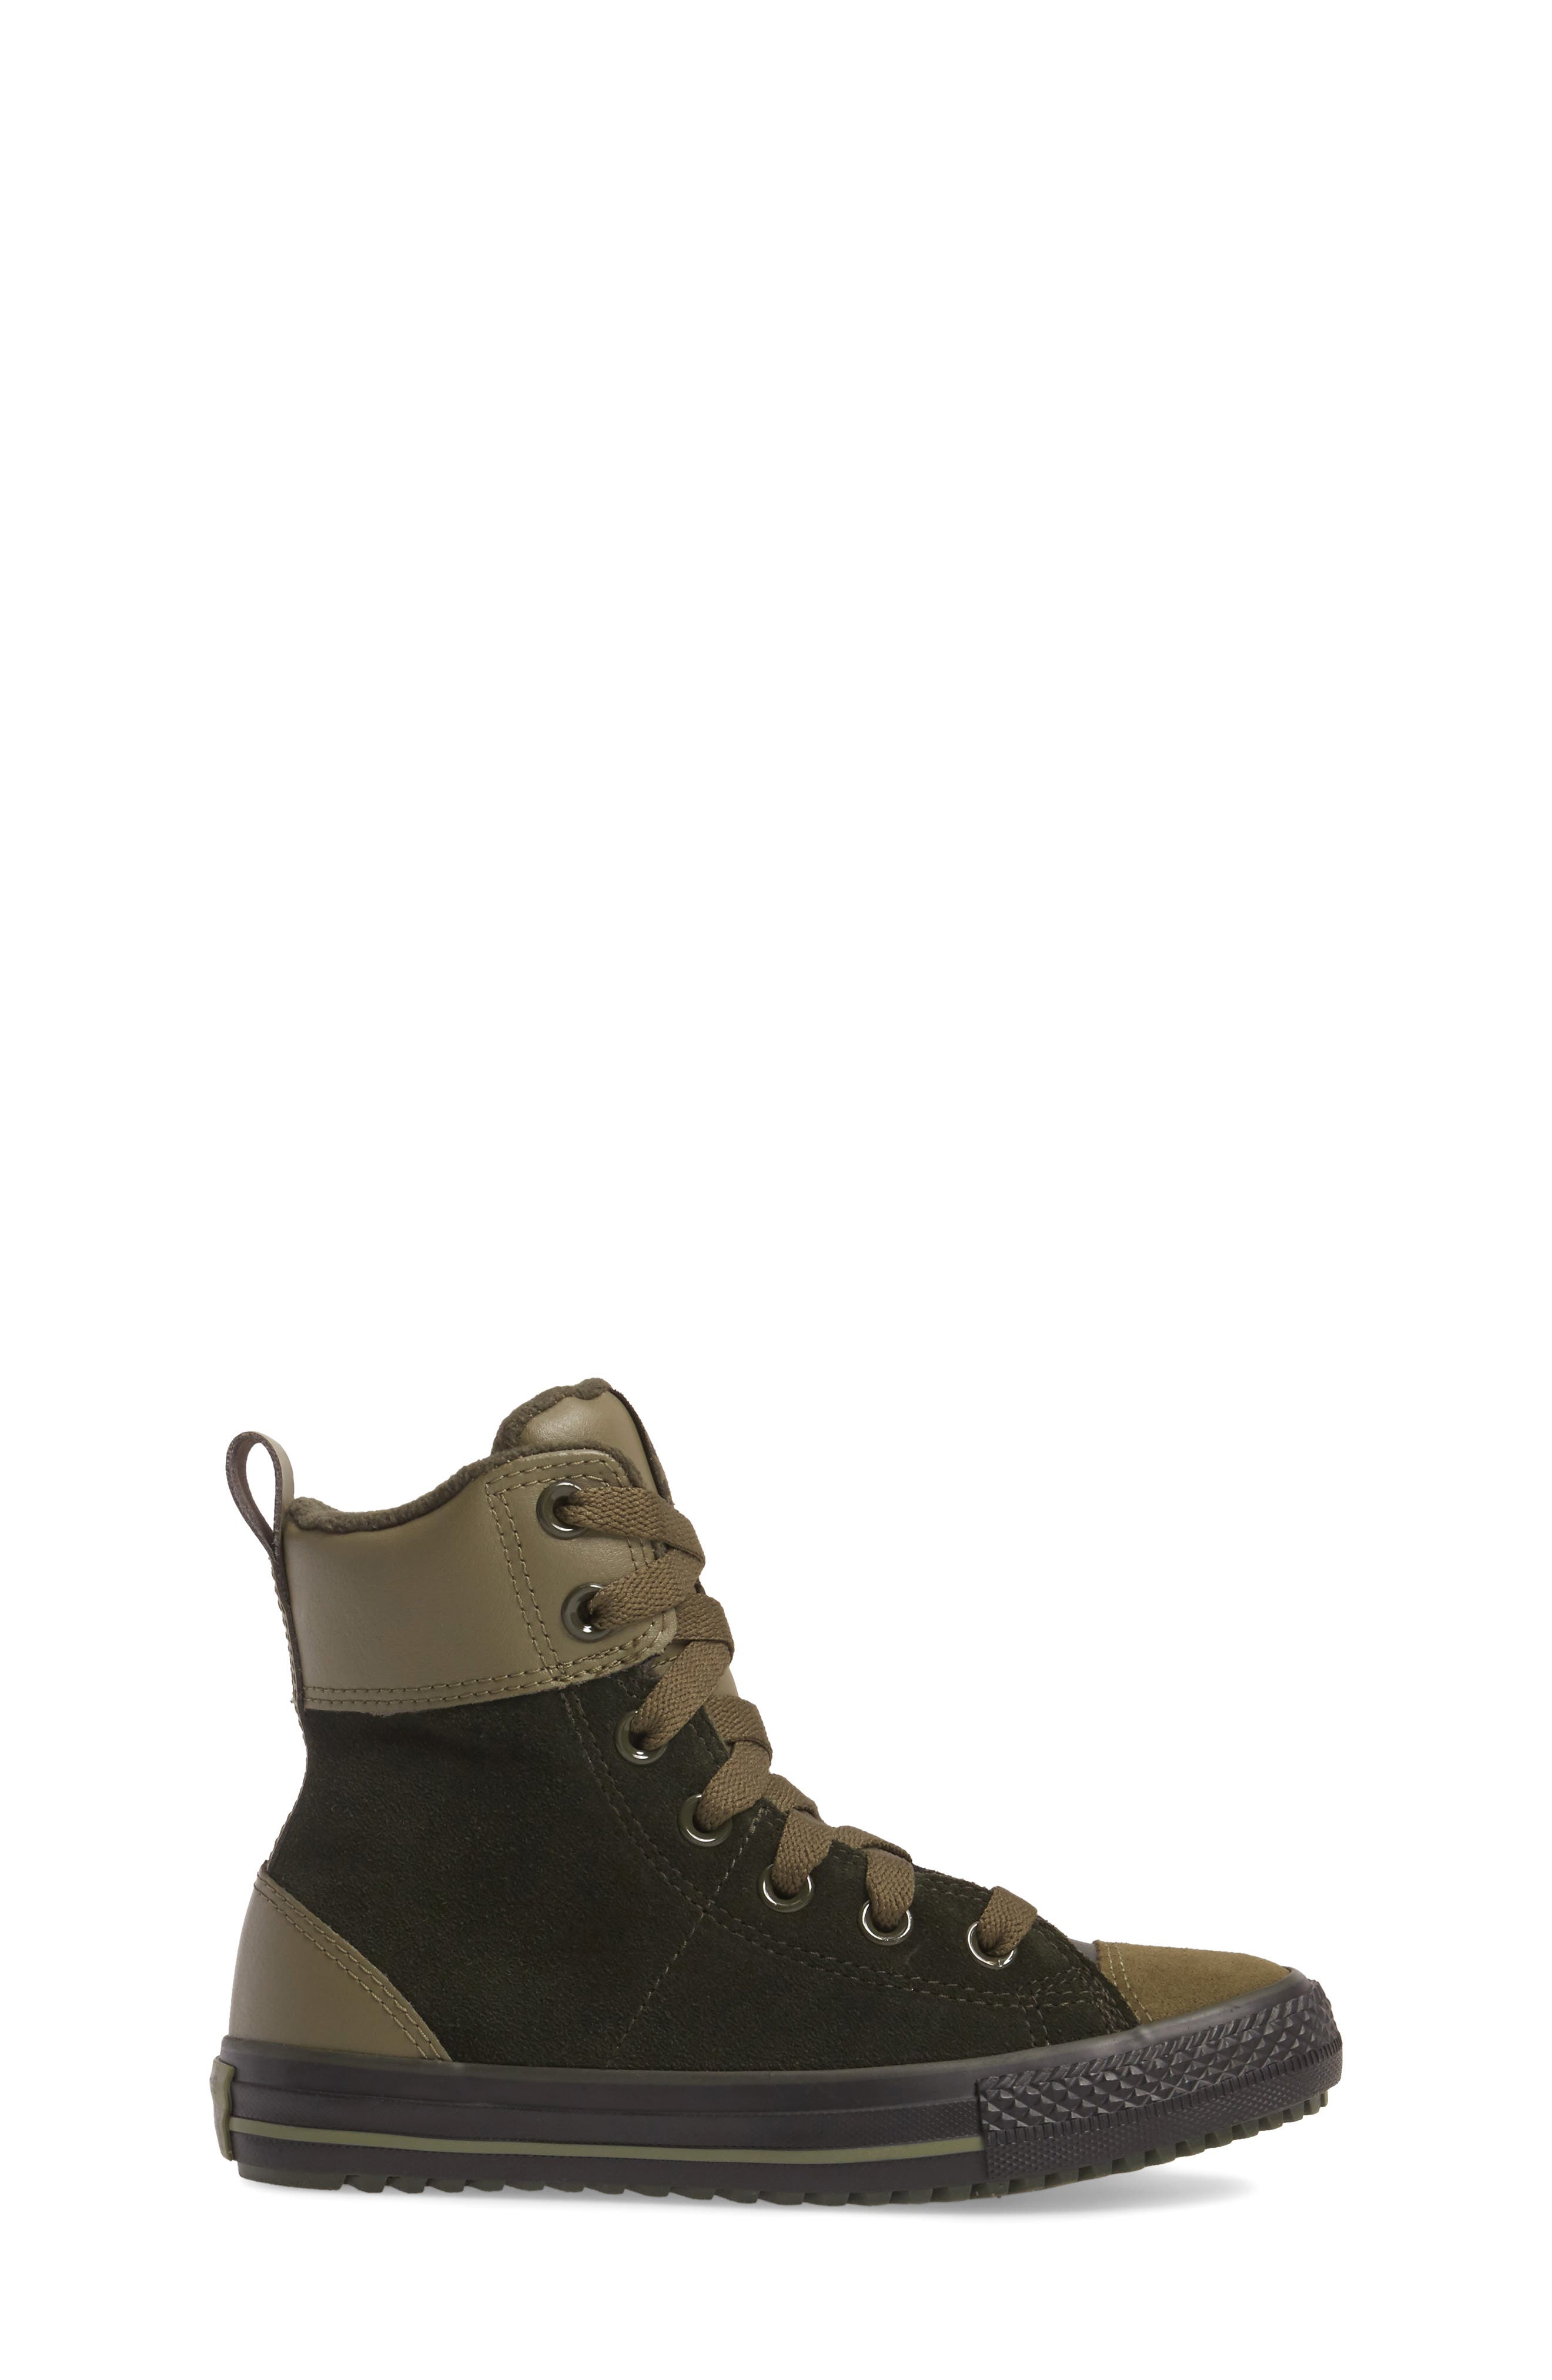 Chuck Taylor<sup>®</sup> All Star<sup>®</sup> Asphalt Sneaker Boot,                             Alternate thumbnail 6, color,